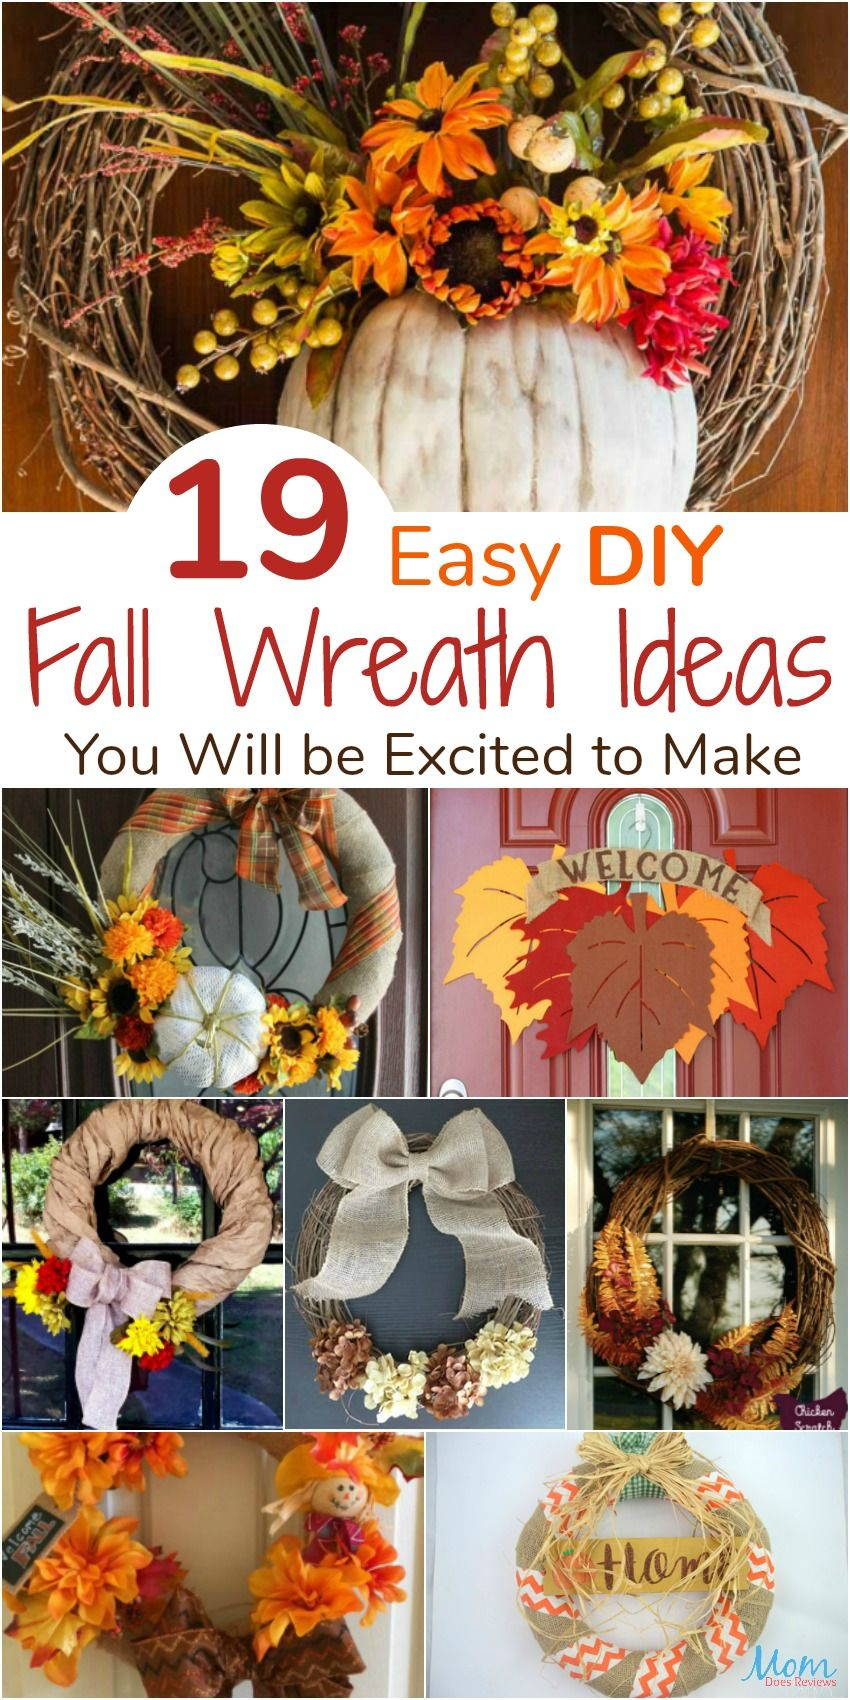 19 Easy Diy Fall Wreath Ideas You Will Be Excited To Make Craft